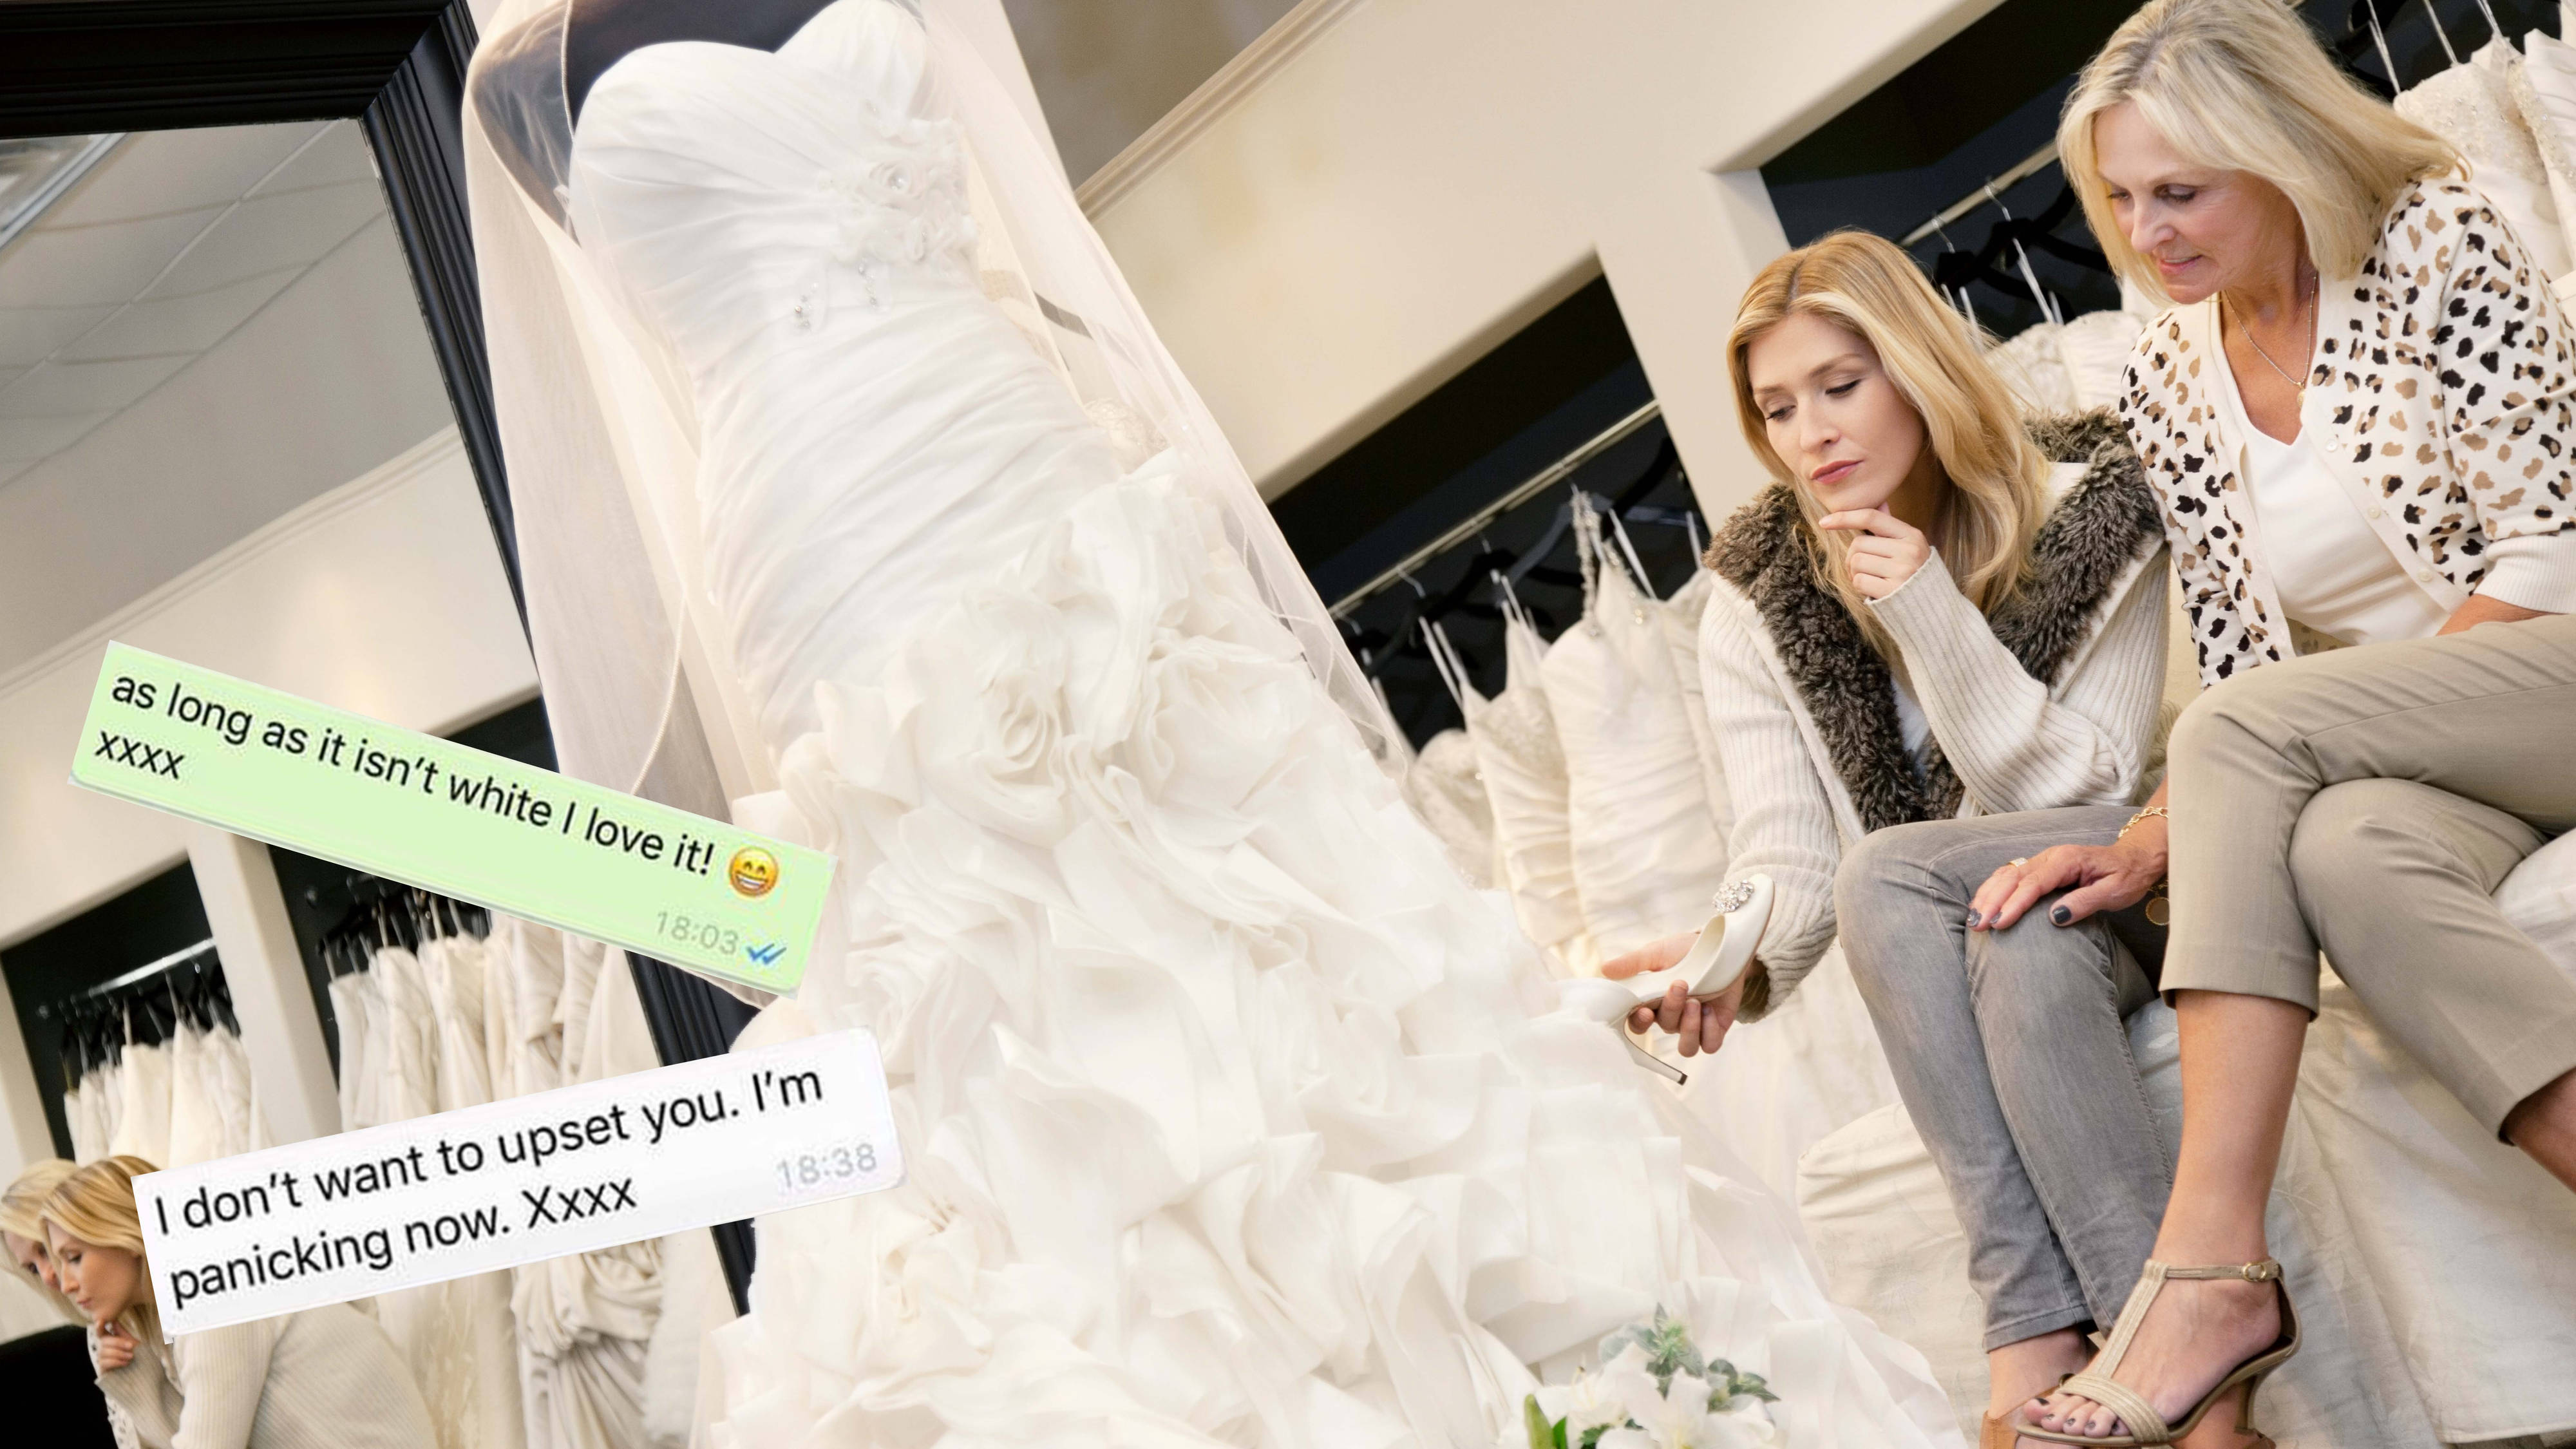 Wearing White To A Wedding.Bride To Be Furious After Mother In Law Insists On Wearing